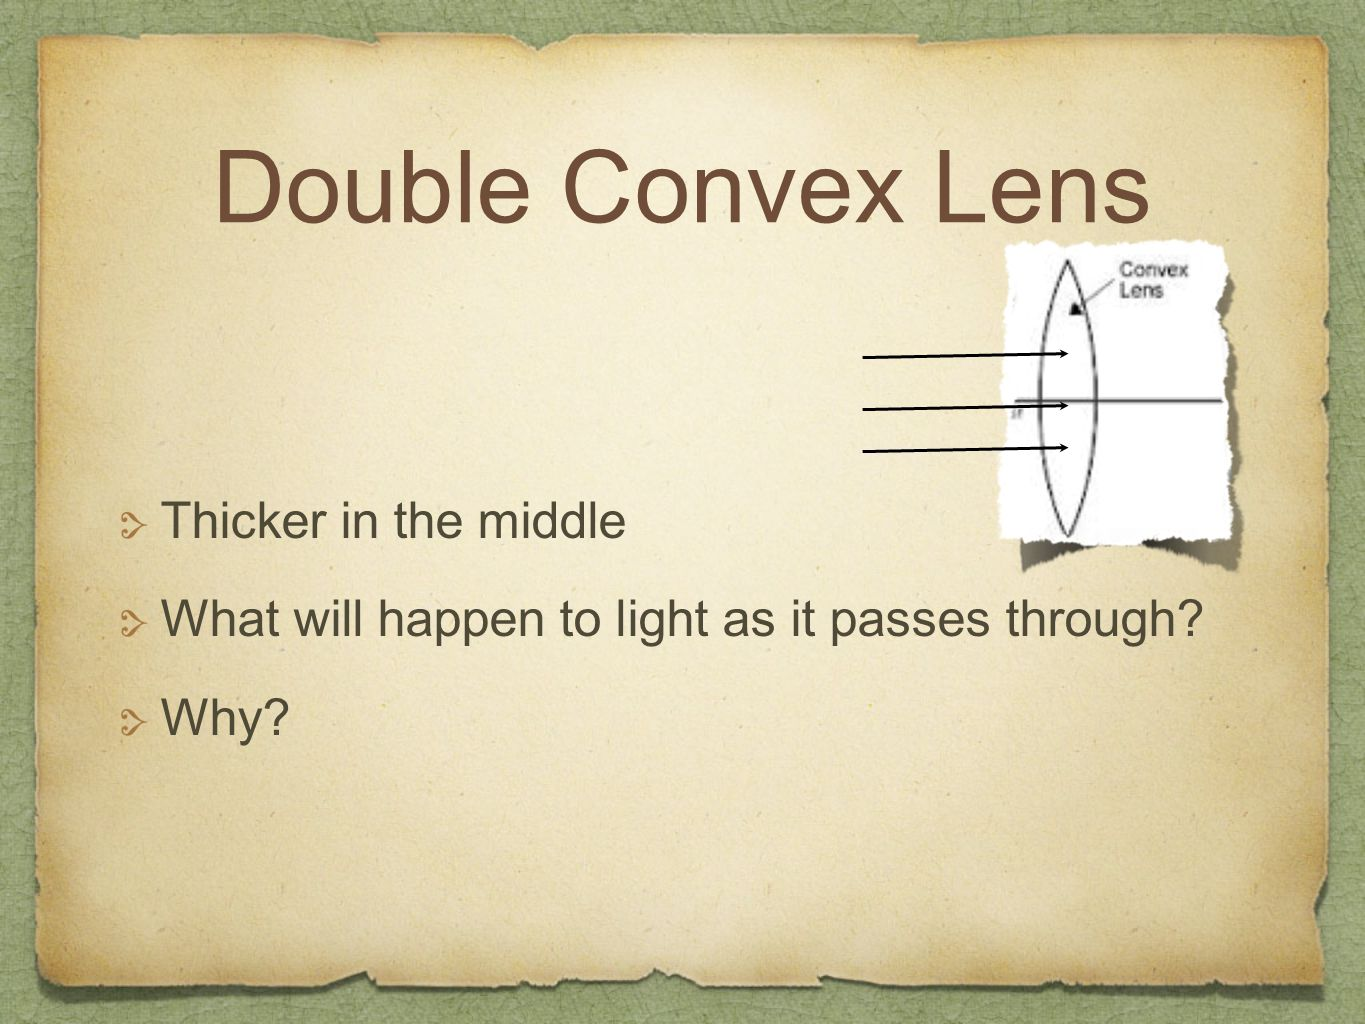 Double Convex Lens Thicker in the middle